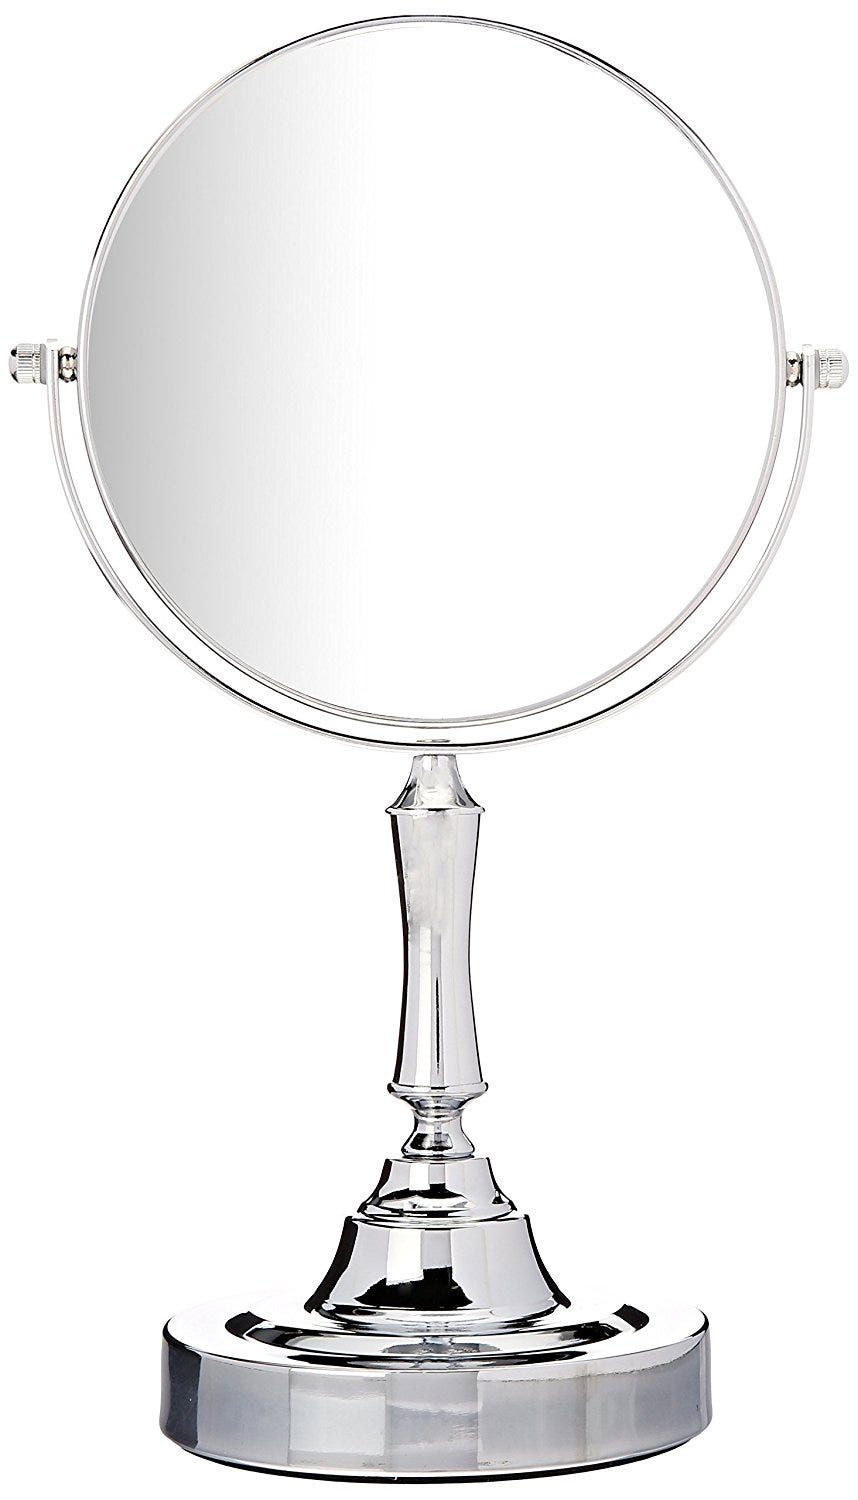 5 Makeup Mirrors That Will Satisfy Every Budget & Vanity